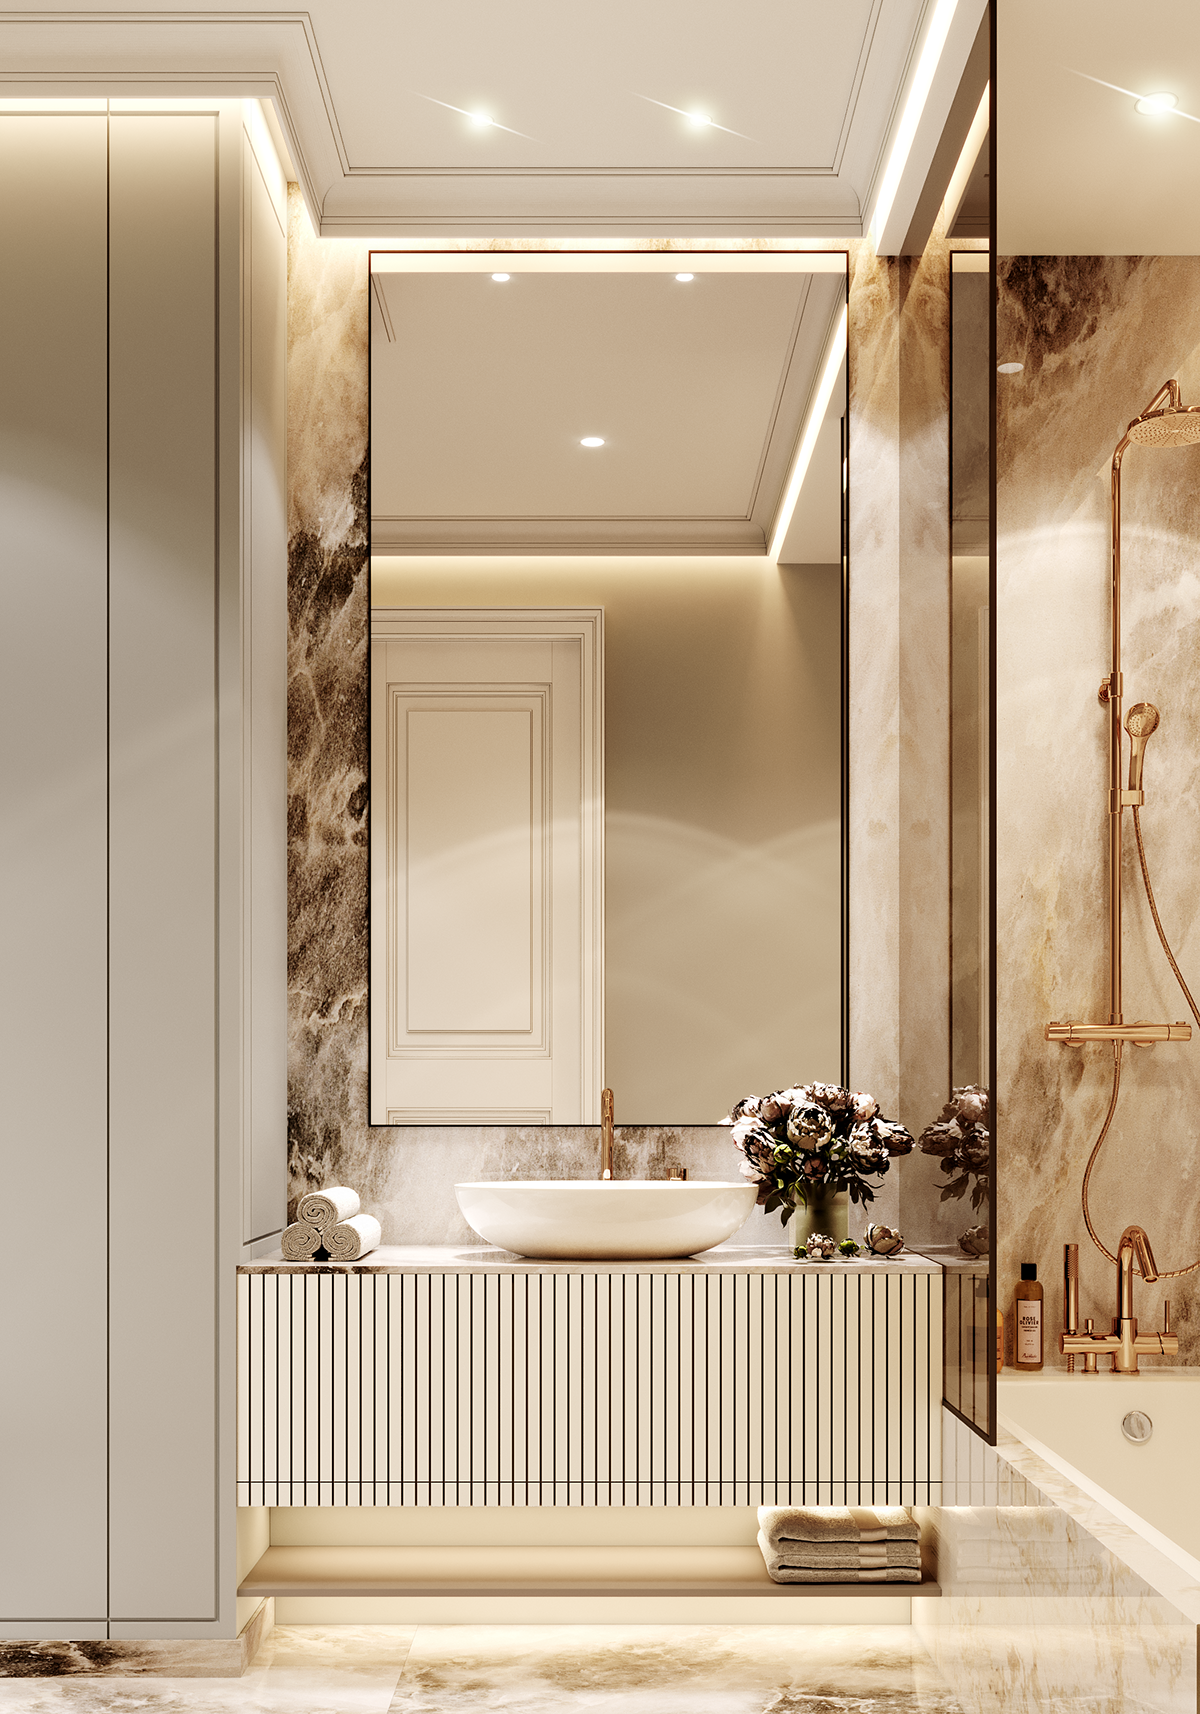 Find Out Why Lighting Is Always Essential Discover More Bathroom Luxury Lighting Fixtures At Luxury Bathroom Bathroom Interior Design Modern Bathroom Design